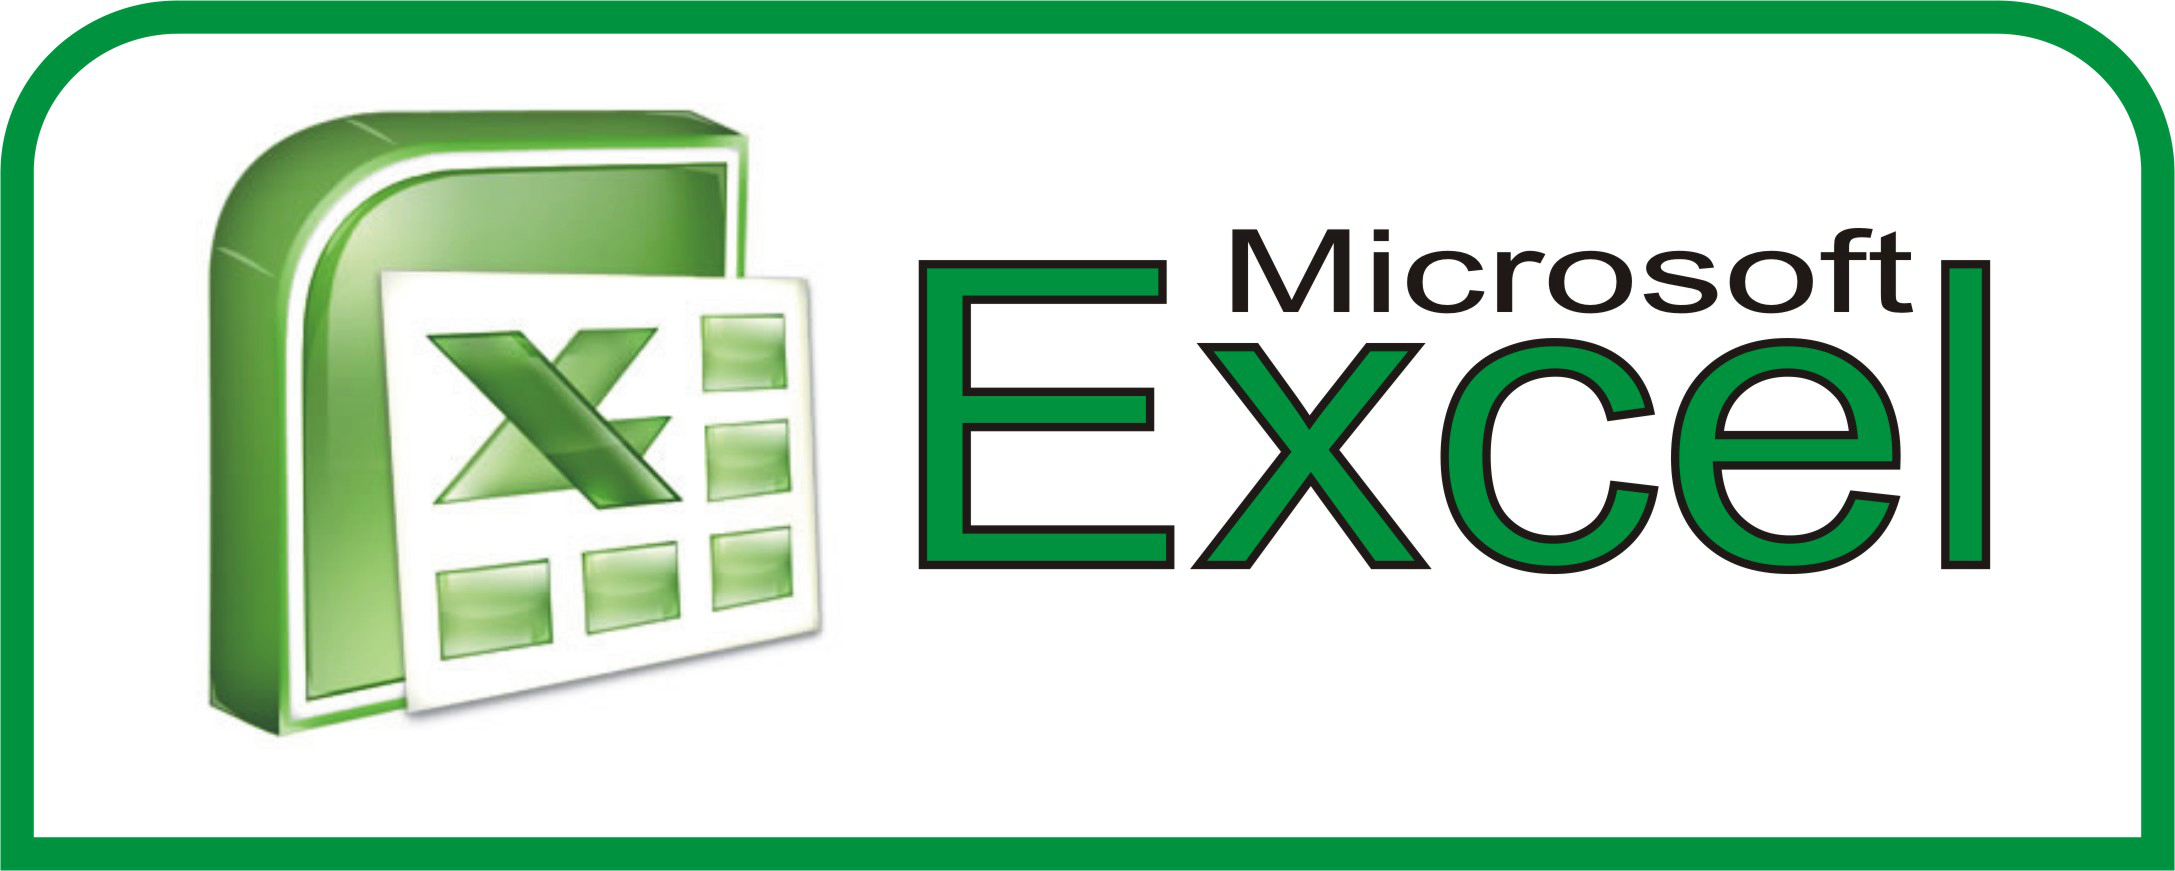 Ediblewildsus  Inspiring  Excel Shortcuts You Probably Didnt Know About  Techdissected With Licious Gilette Sensor Excel Besides Excel Error Value Furthermore Irr Excel Example With Extraordinary How To Get P Value In Excel Also Rank Formula Excel In Addition Method Of Least Squares Excel And Range Vba Excel As Well As Repair Excel  Additionally Excel Userform Templates From Techdissectedcom With Ediblewildsus  Licious  Excel Shortcuts You Probably Didnt Know About  Techdissected With Extraordinary Gilette Sensor Excel Besides Excel Error Value Furthermore Irr Excel Example And Inspiring How To Get P Value In Excel Also Rank Formula Excel In Addition Method Of Least Squares Excel From Techdissectedcom